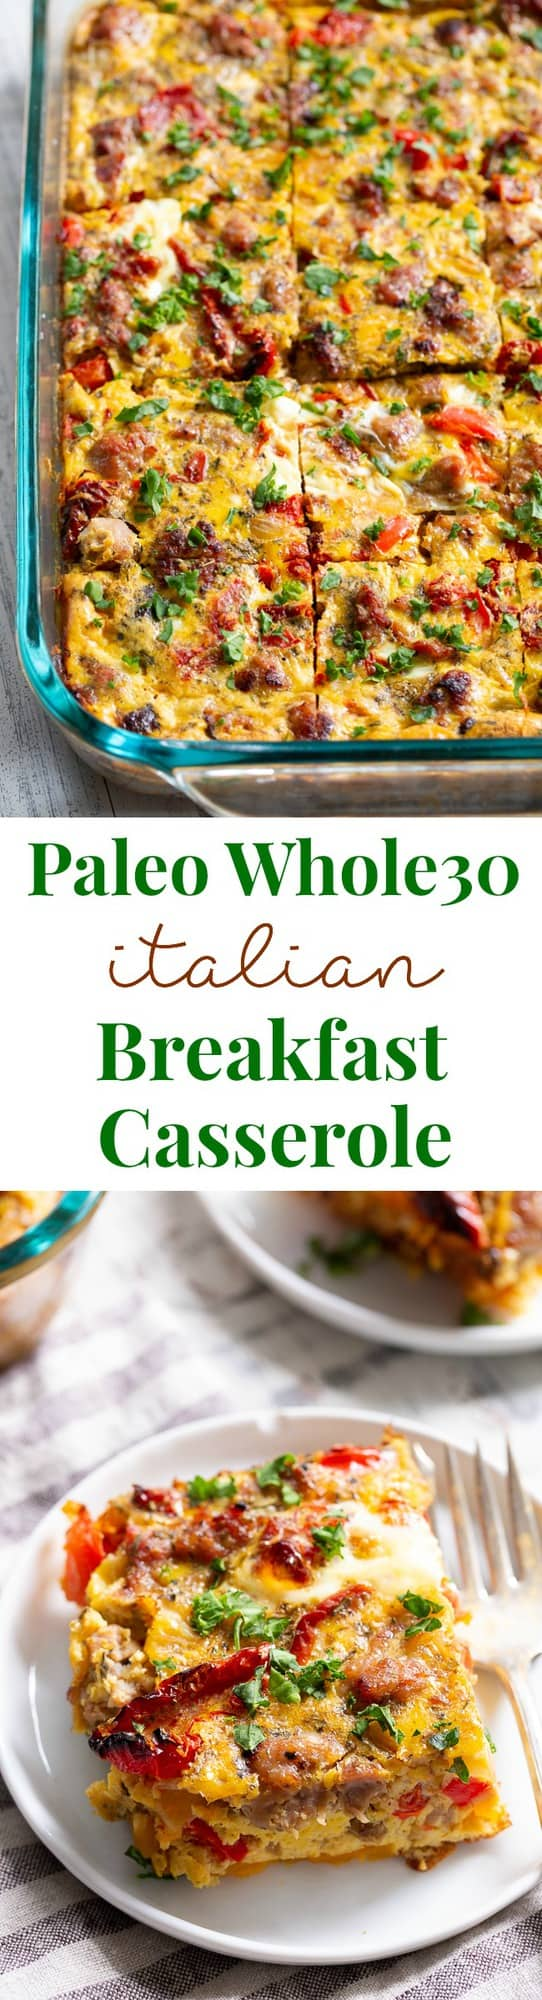 This Italian breakfast casserole is packed with goodies!  Sausage, sun dried tomatoes, peppers, onions, garlic, spices, and a creamy egg mixture!  It's Paleo and Whole30 compliant, great to make ahead, and family approved.